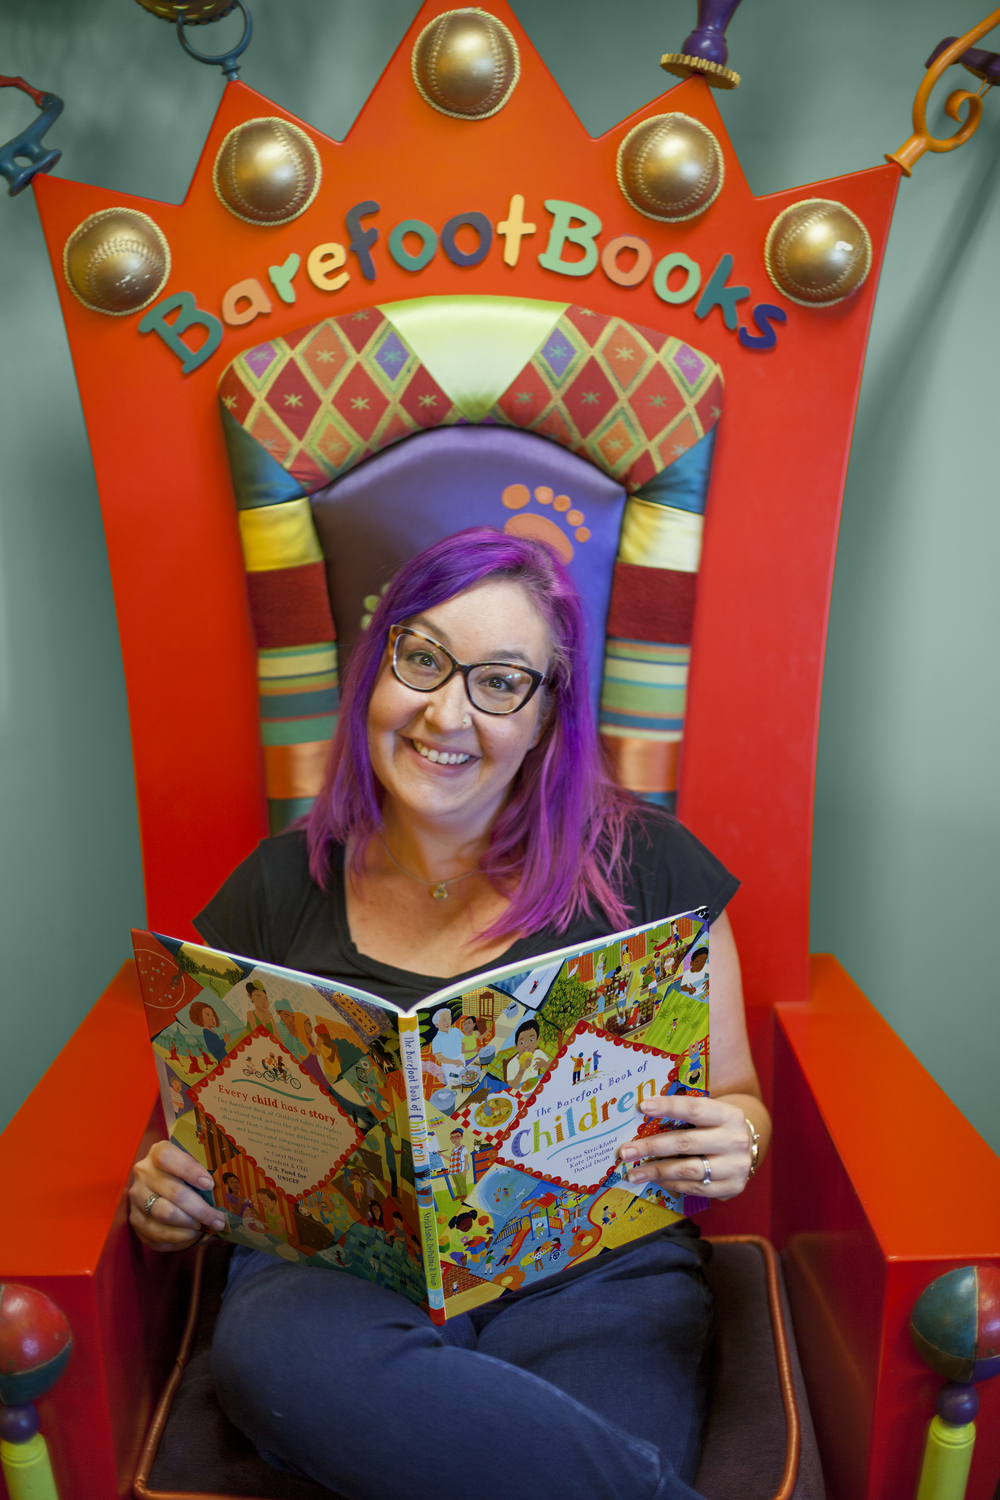 Kate DePalma on the famous Barefoot Books throne with  The Barefoot Book of Children.  Photo by Sarah Soldano.